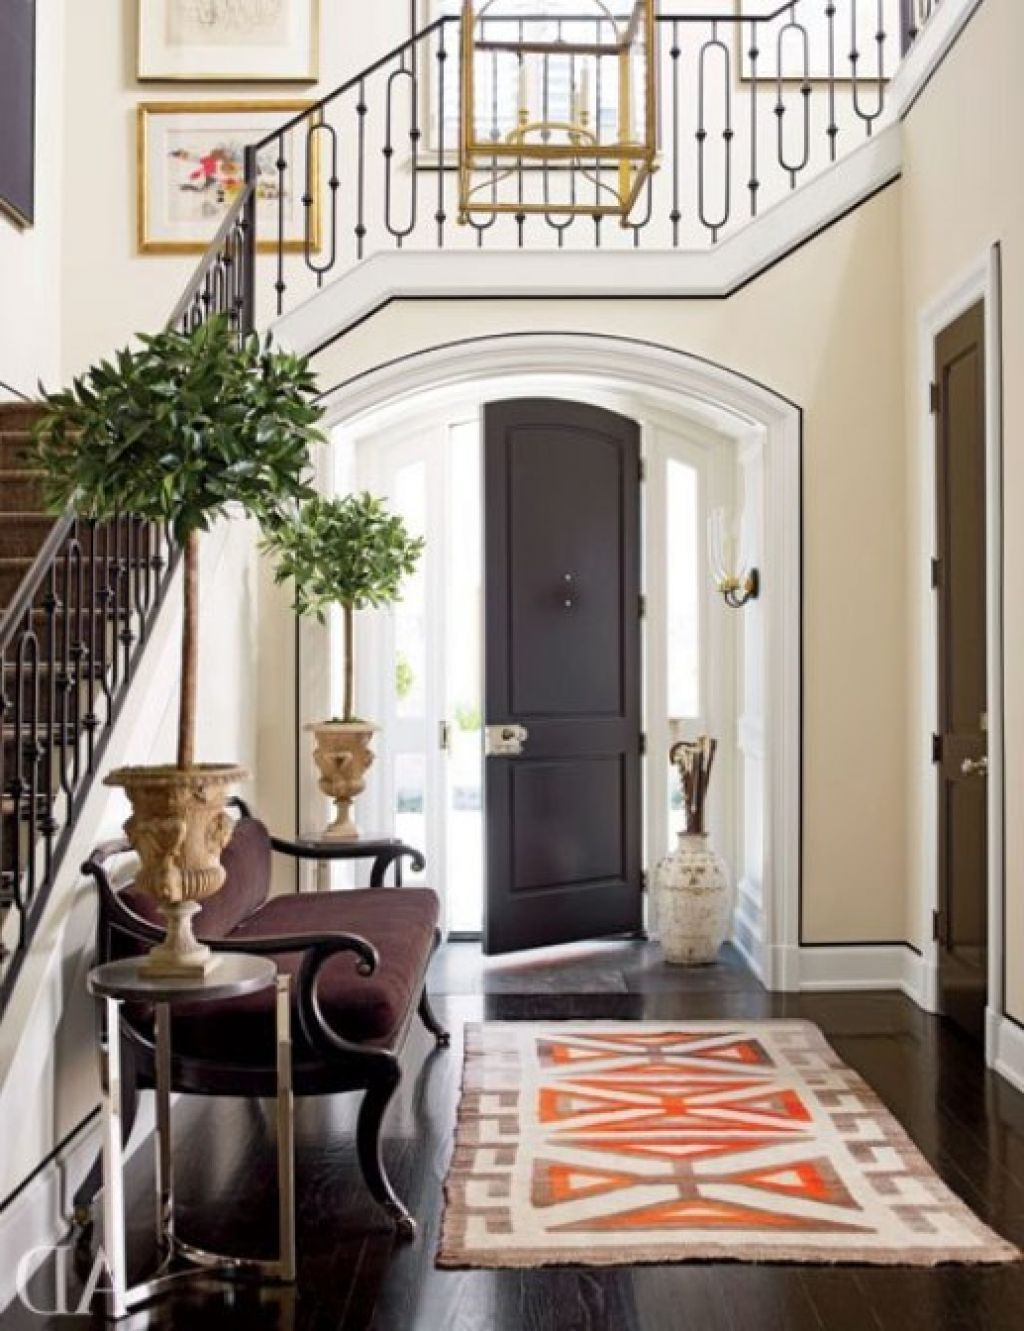 Entrance Room Ideas Decorating Modern Traditional Simple Small Symmetry